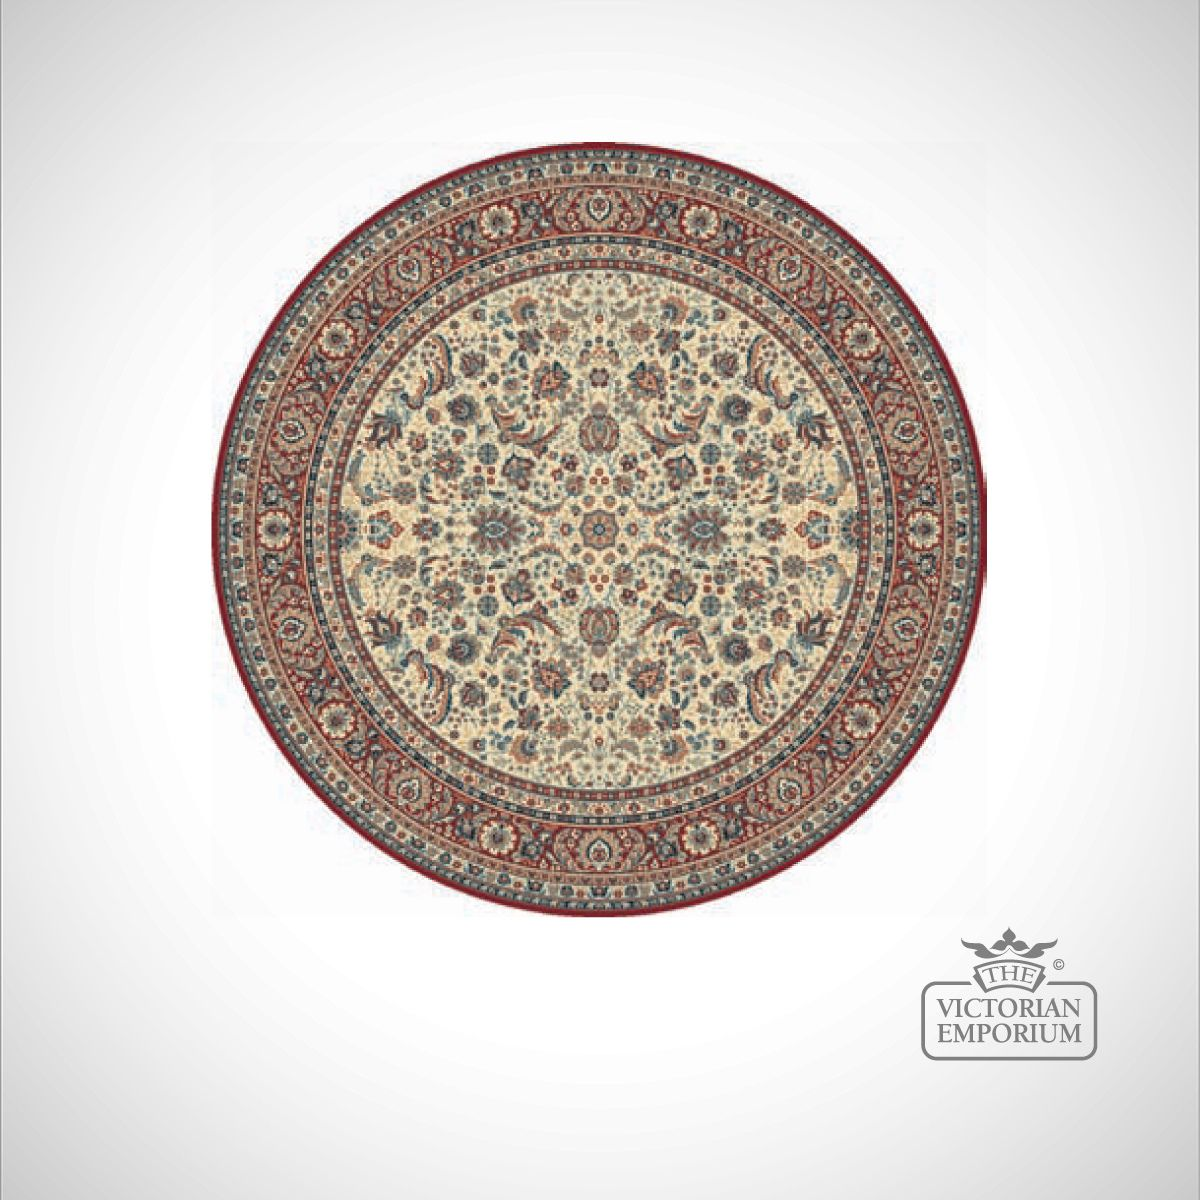 Circular Victorian Rug Style Ka13720 In 6 Different